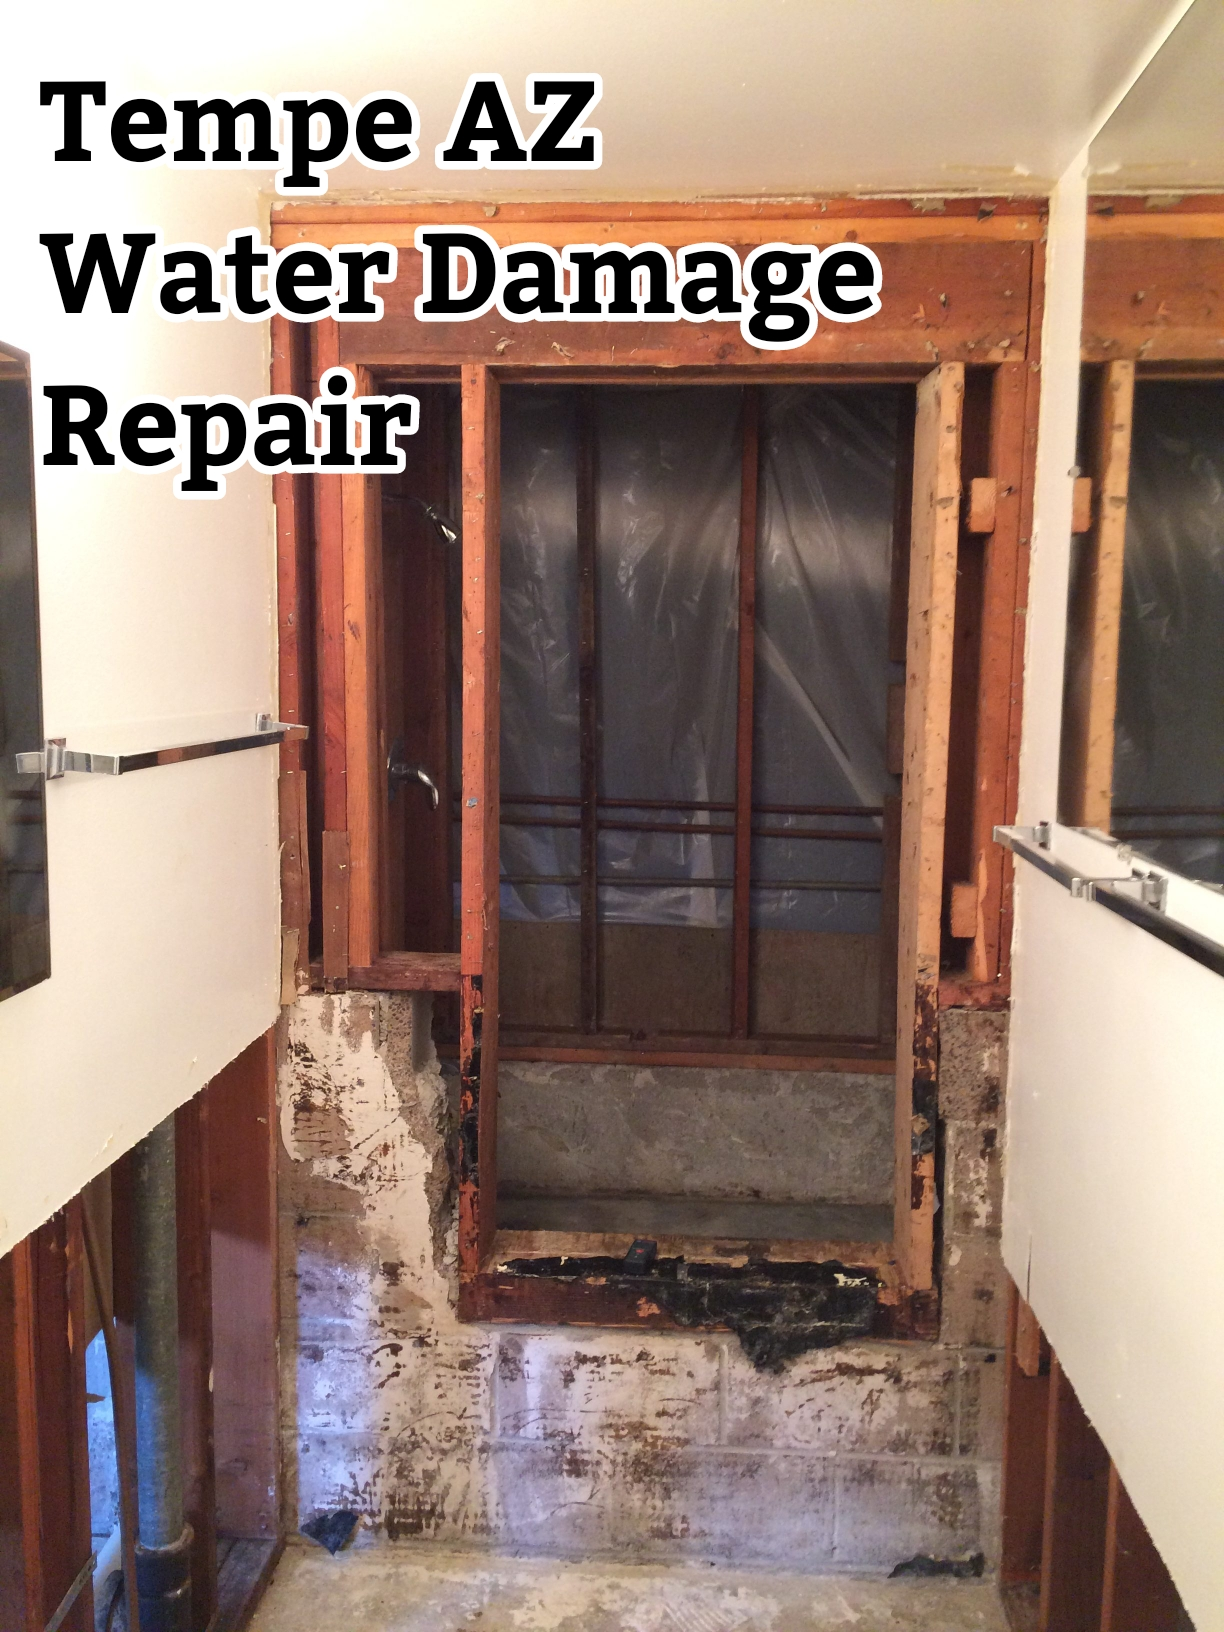 Tempe AZ Water Damage Repair